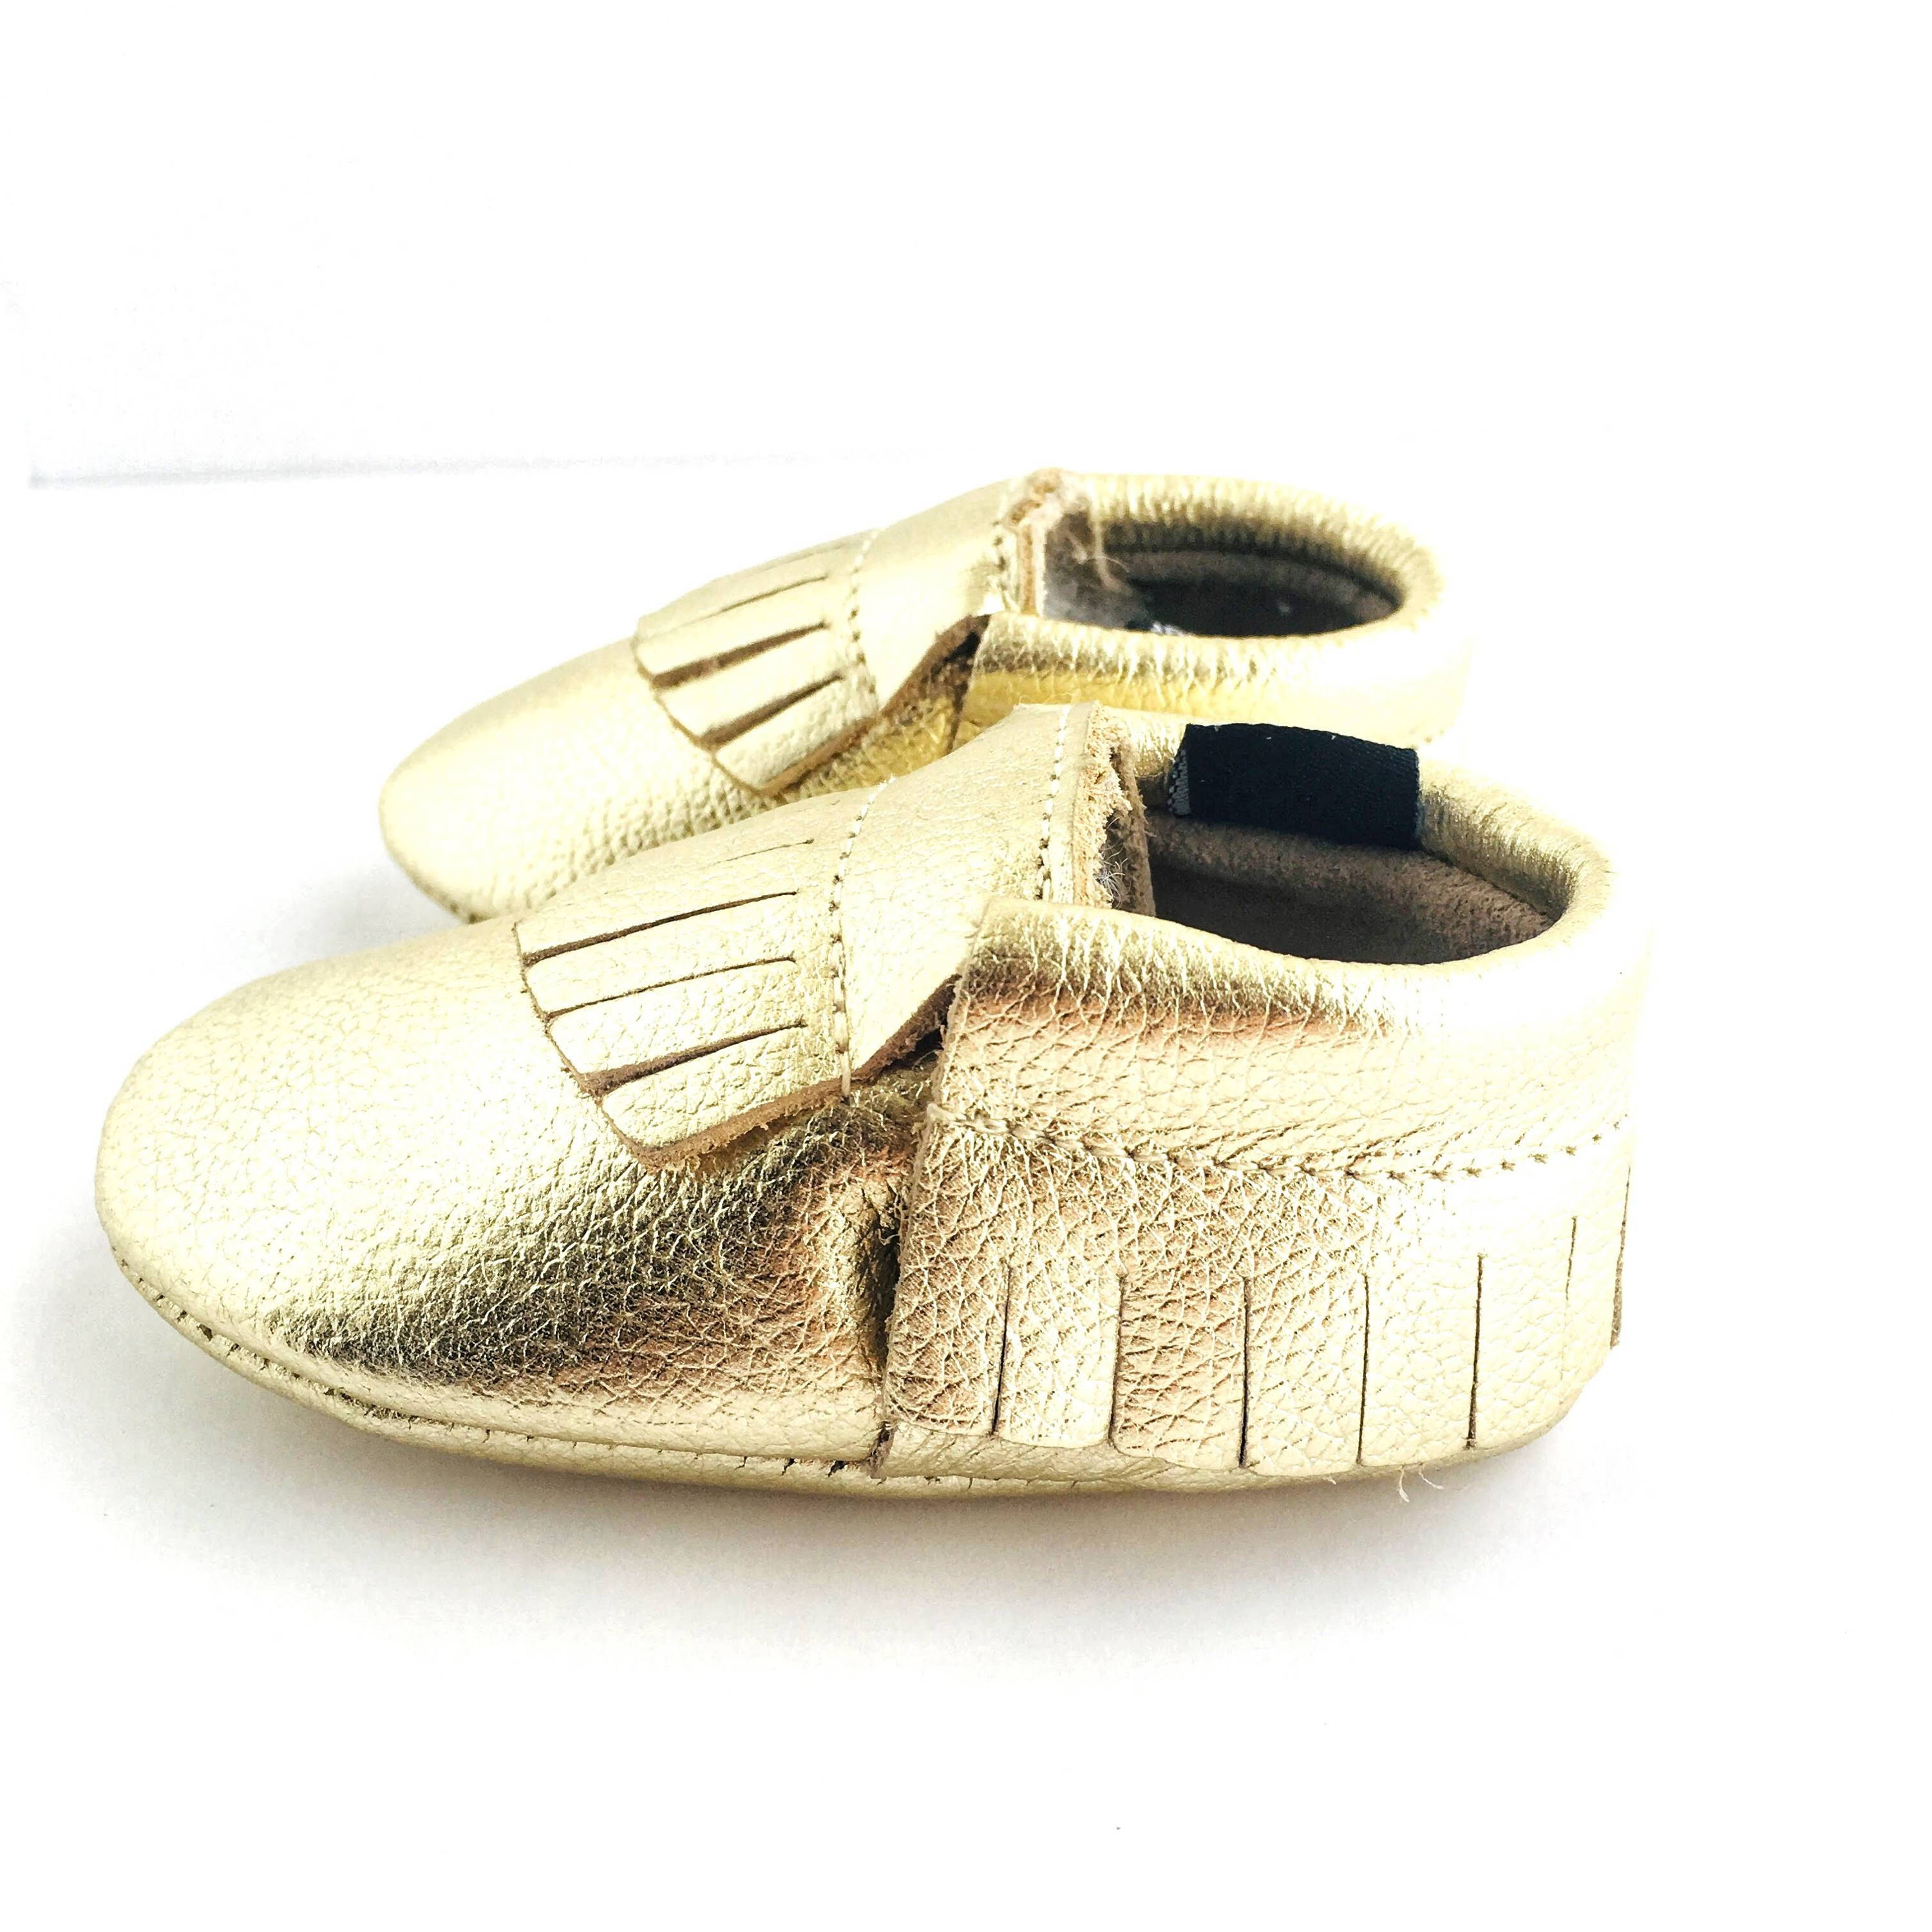 Metallic Gold colour soft sole shoes with fringe sole view